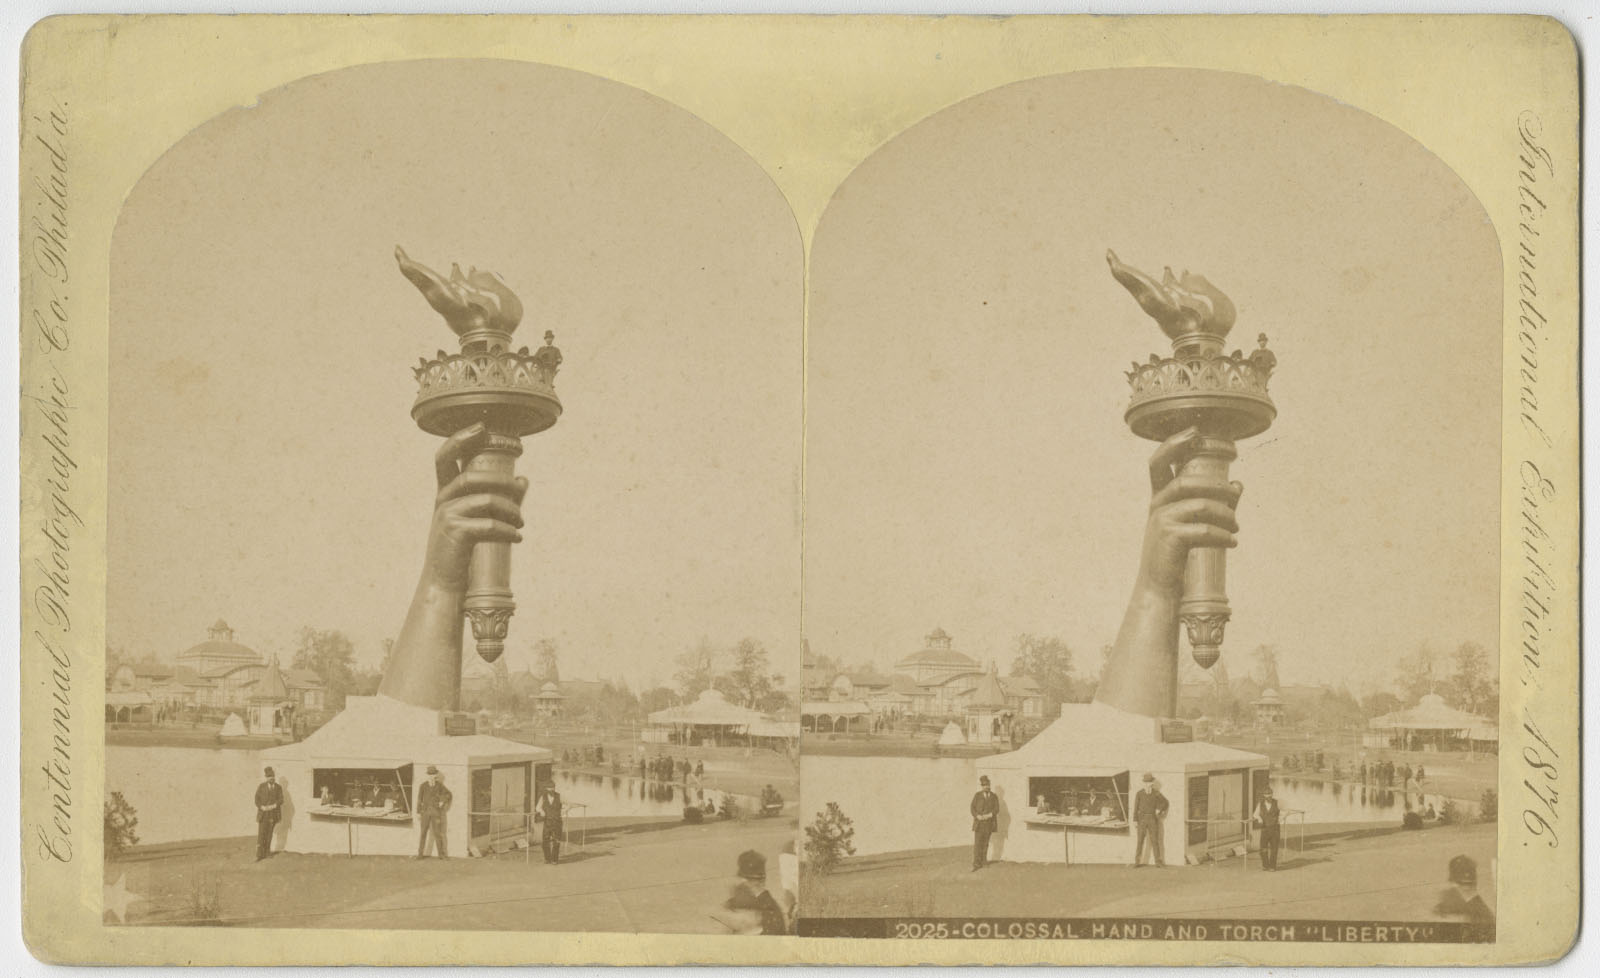 Colossal hand and torch 'Liberty' | Philadelphia: Centennial Photographic Company, 1876. | Library Company of Philadelphia